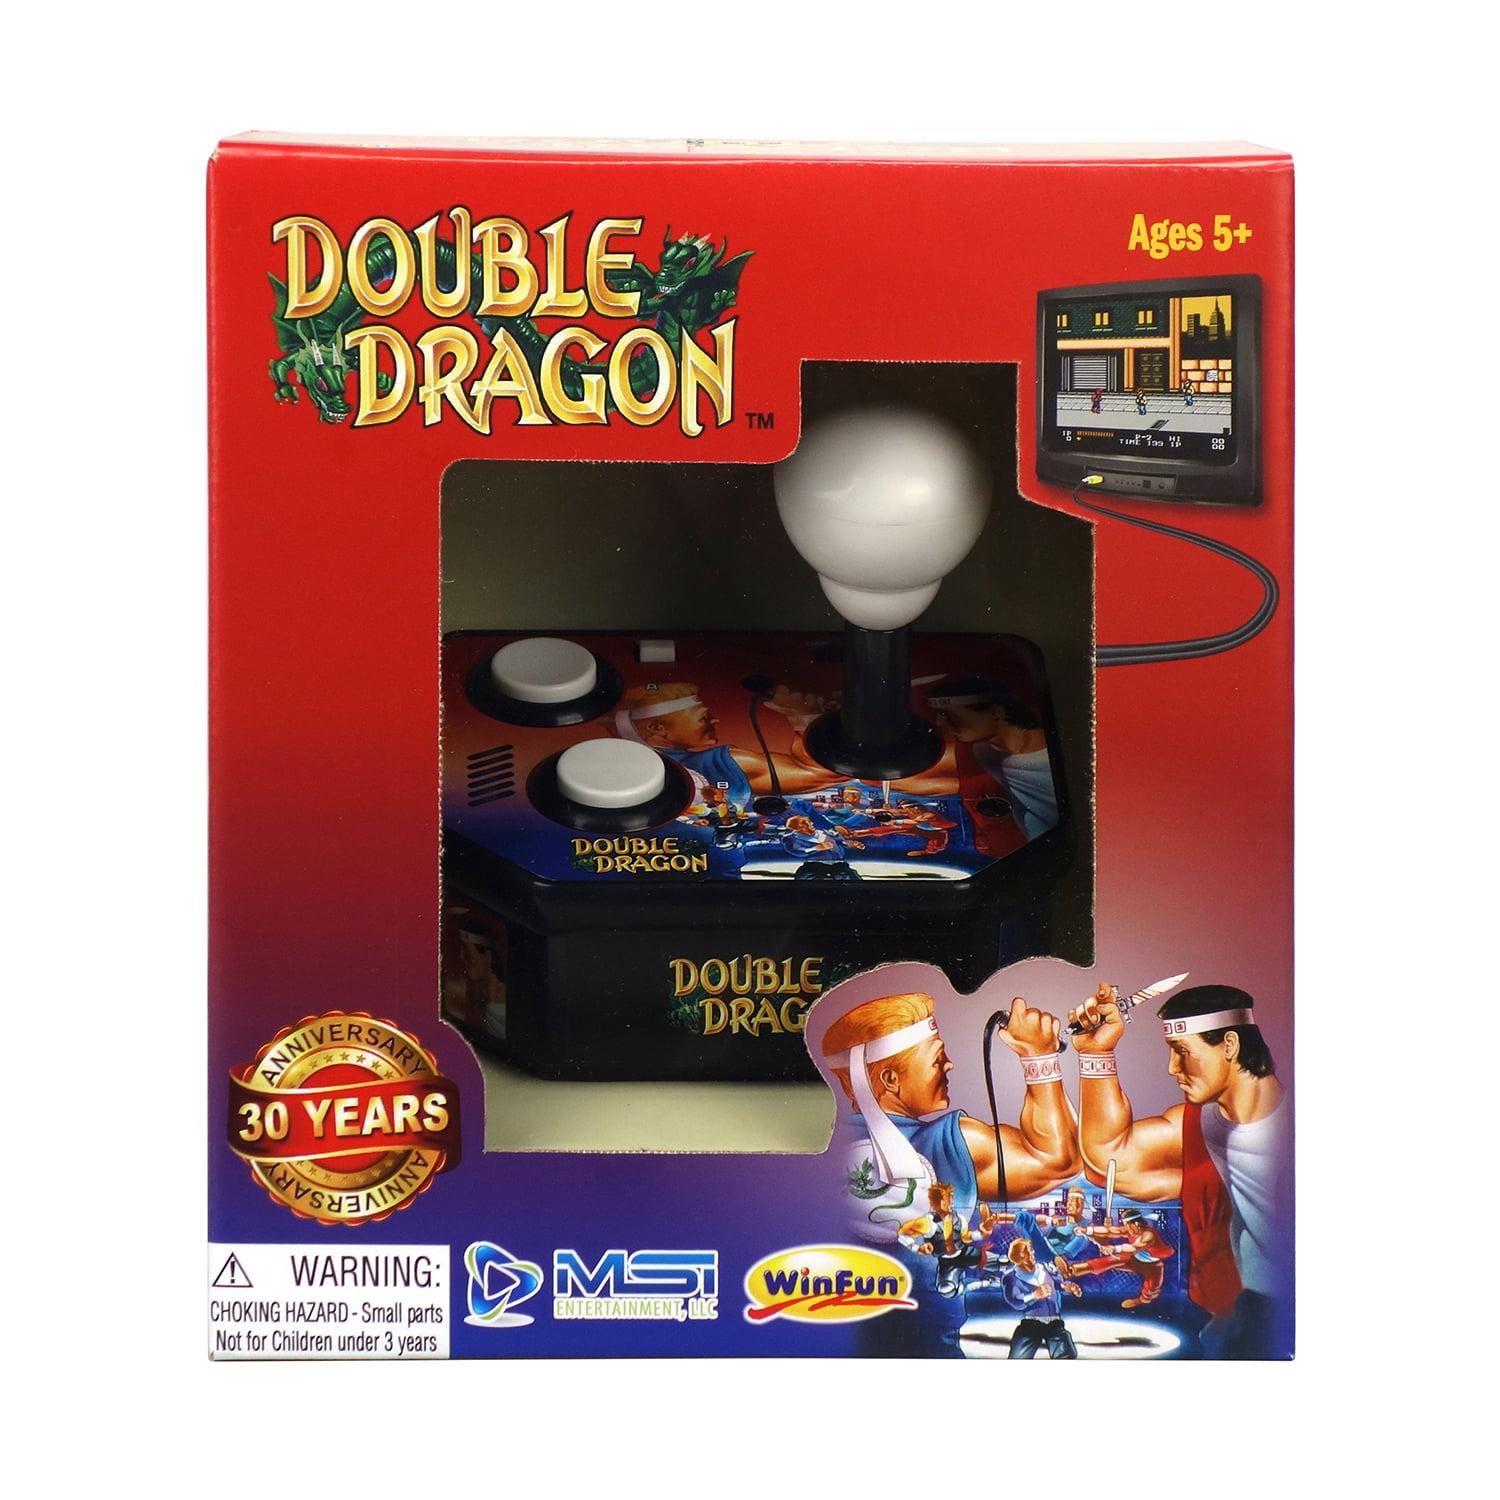 Double Dragon TV Arcade System